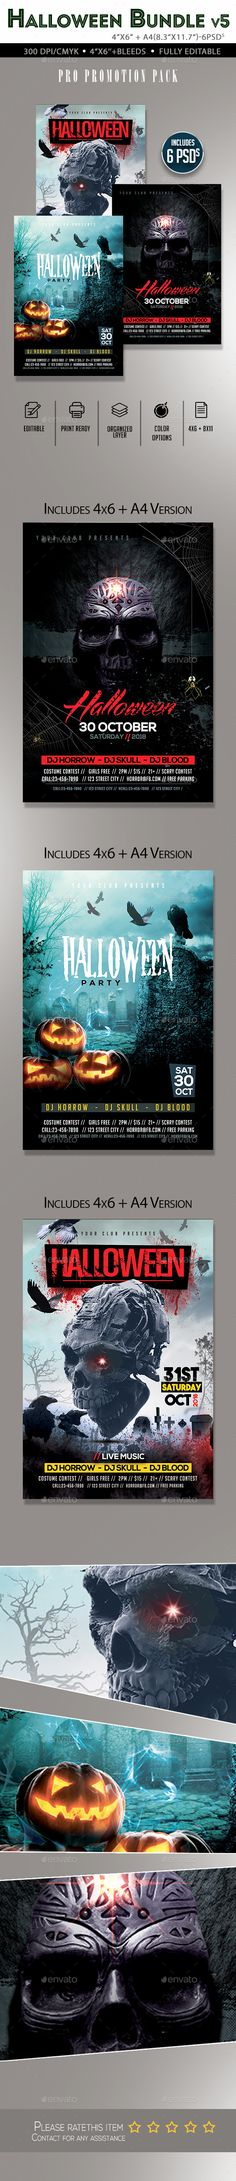 Halloween Flyer Template PSD Bundle